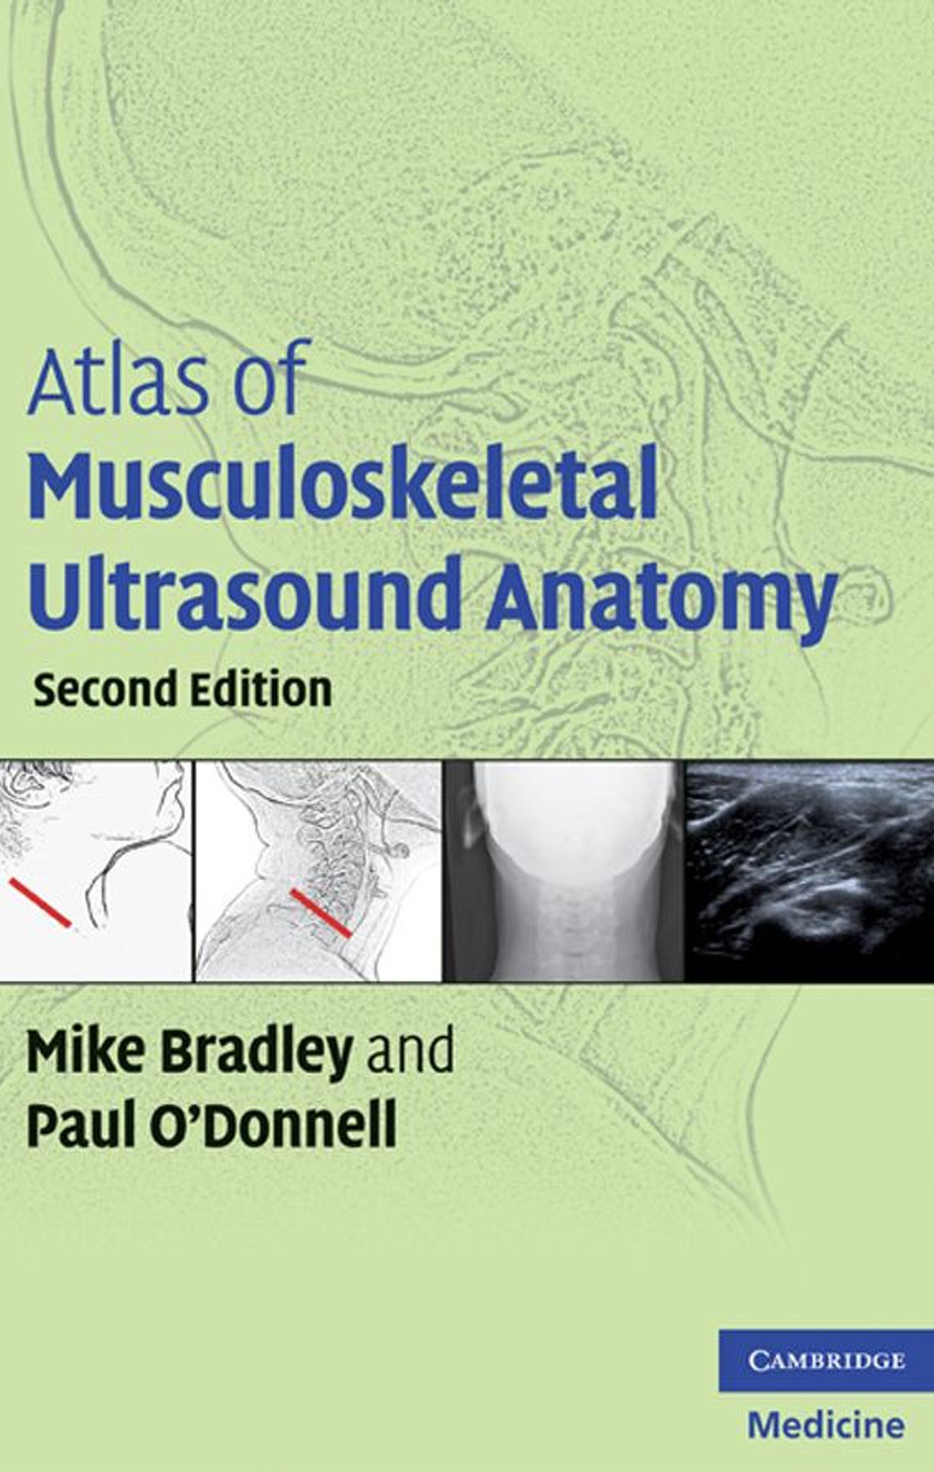 [PDF] Atlas of Musculoskeletal Ultrasound Anatomy